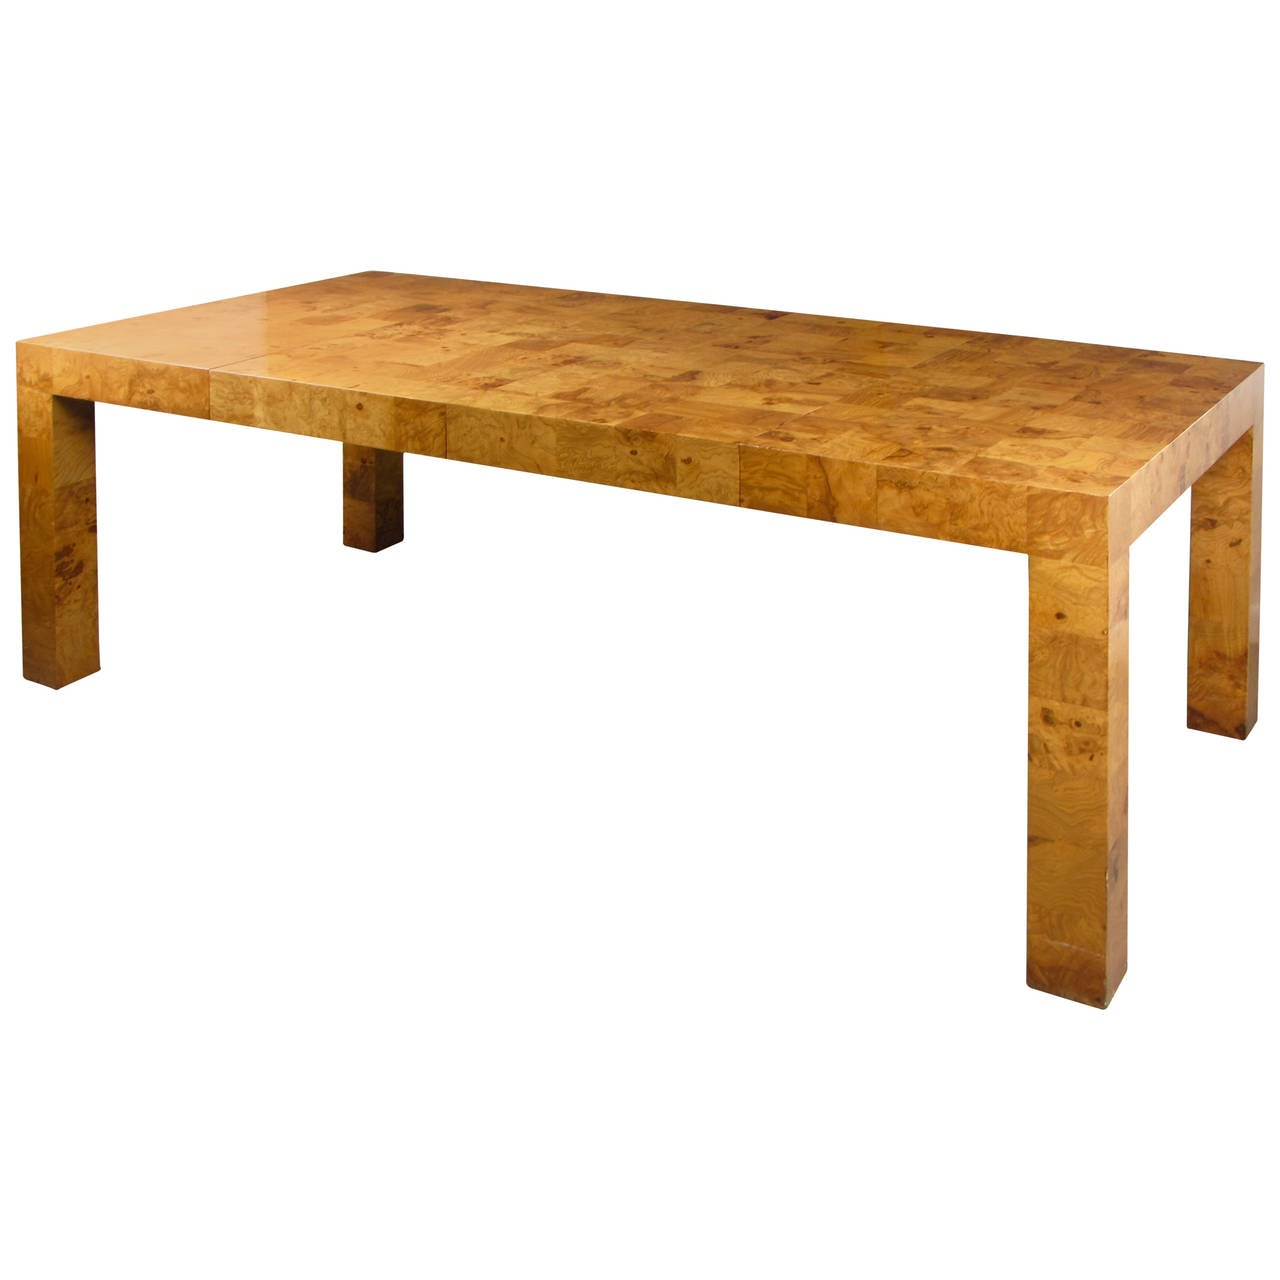 Incredible checkered burl parsons dining table by milo for Incredible dining room tables extendable